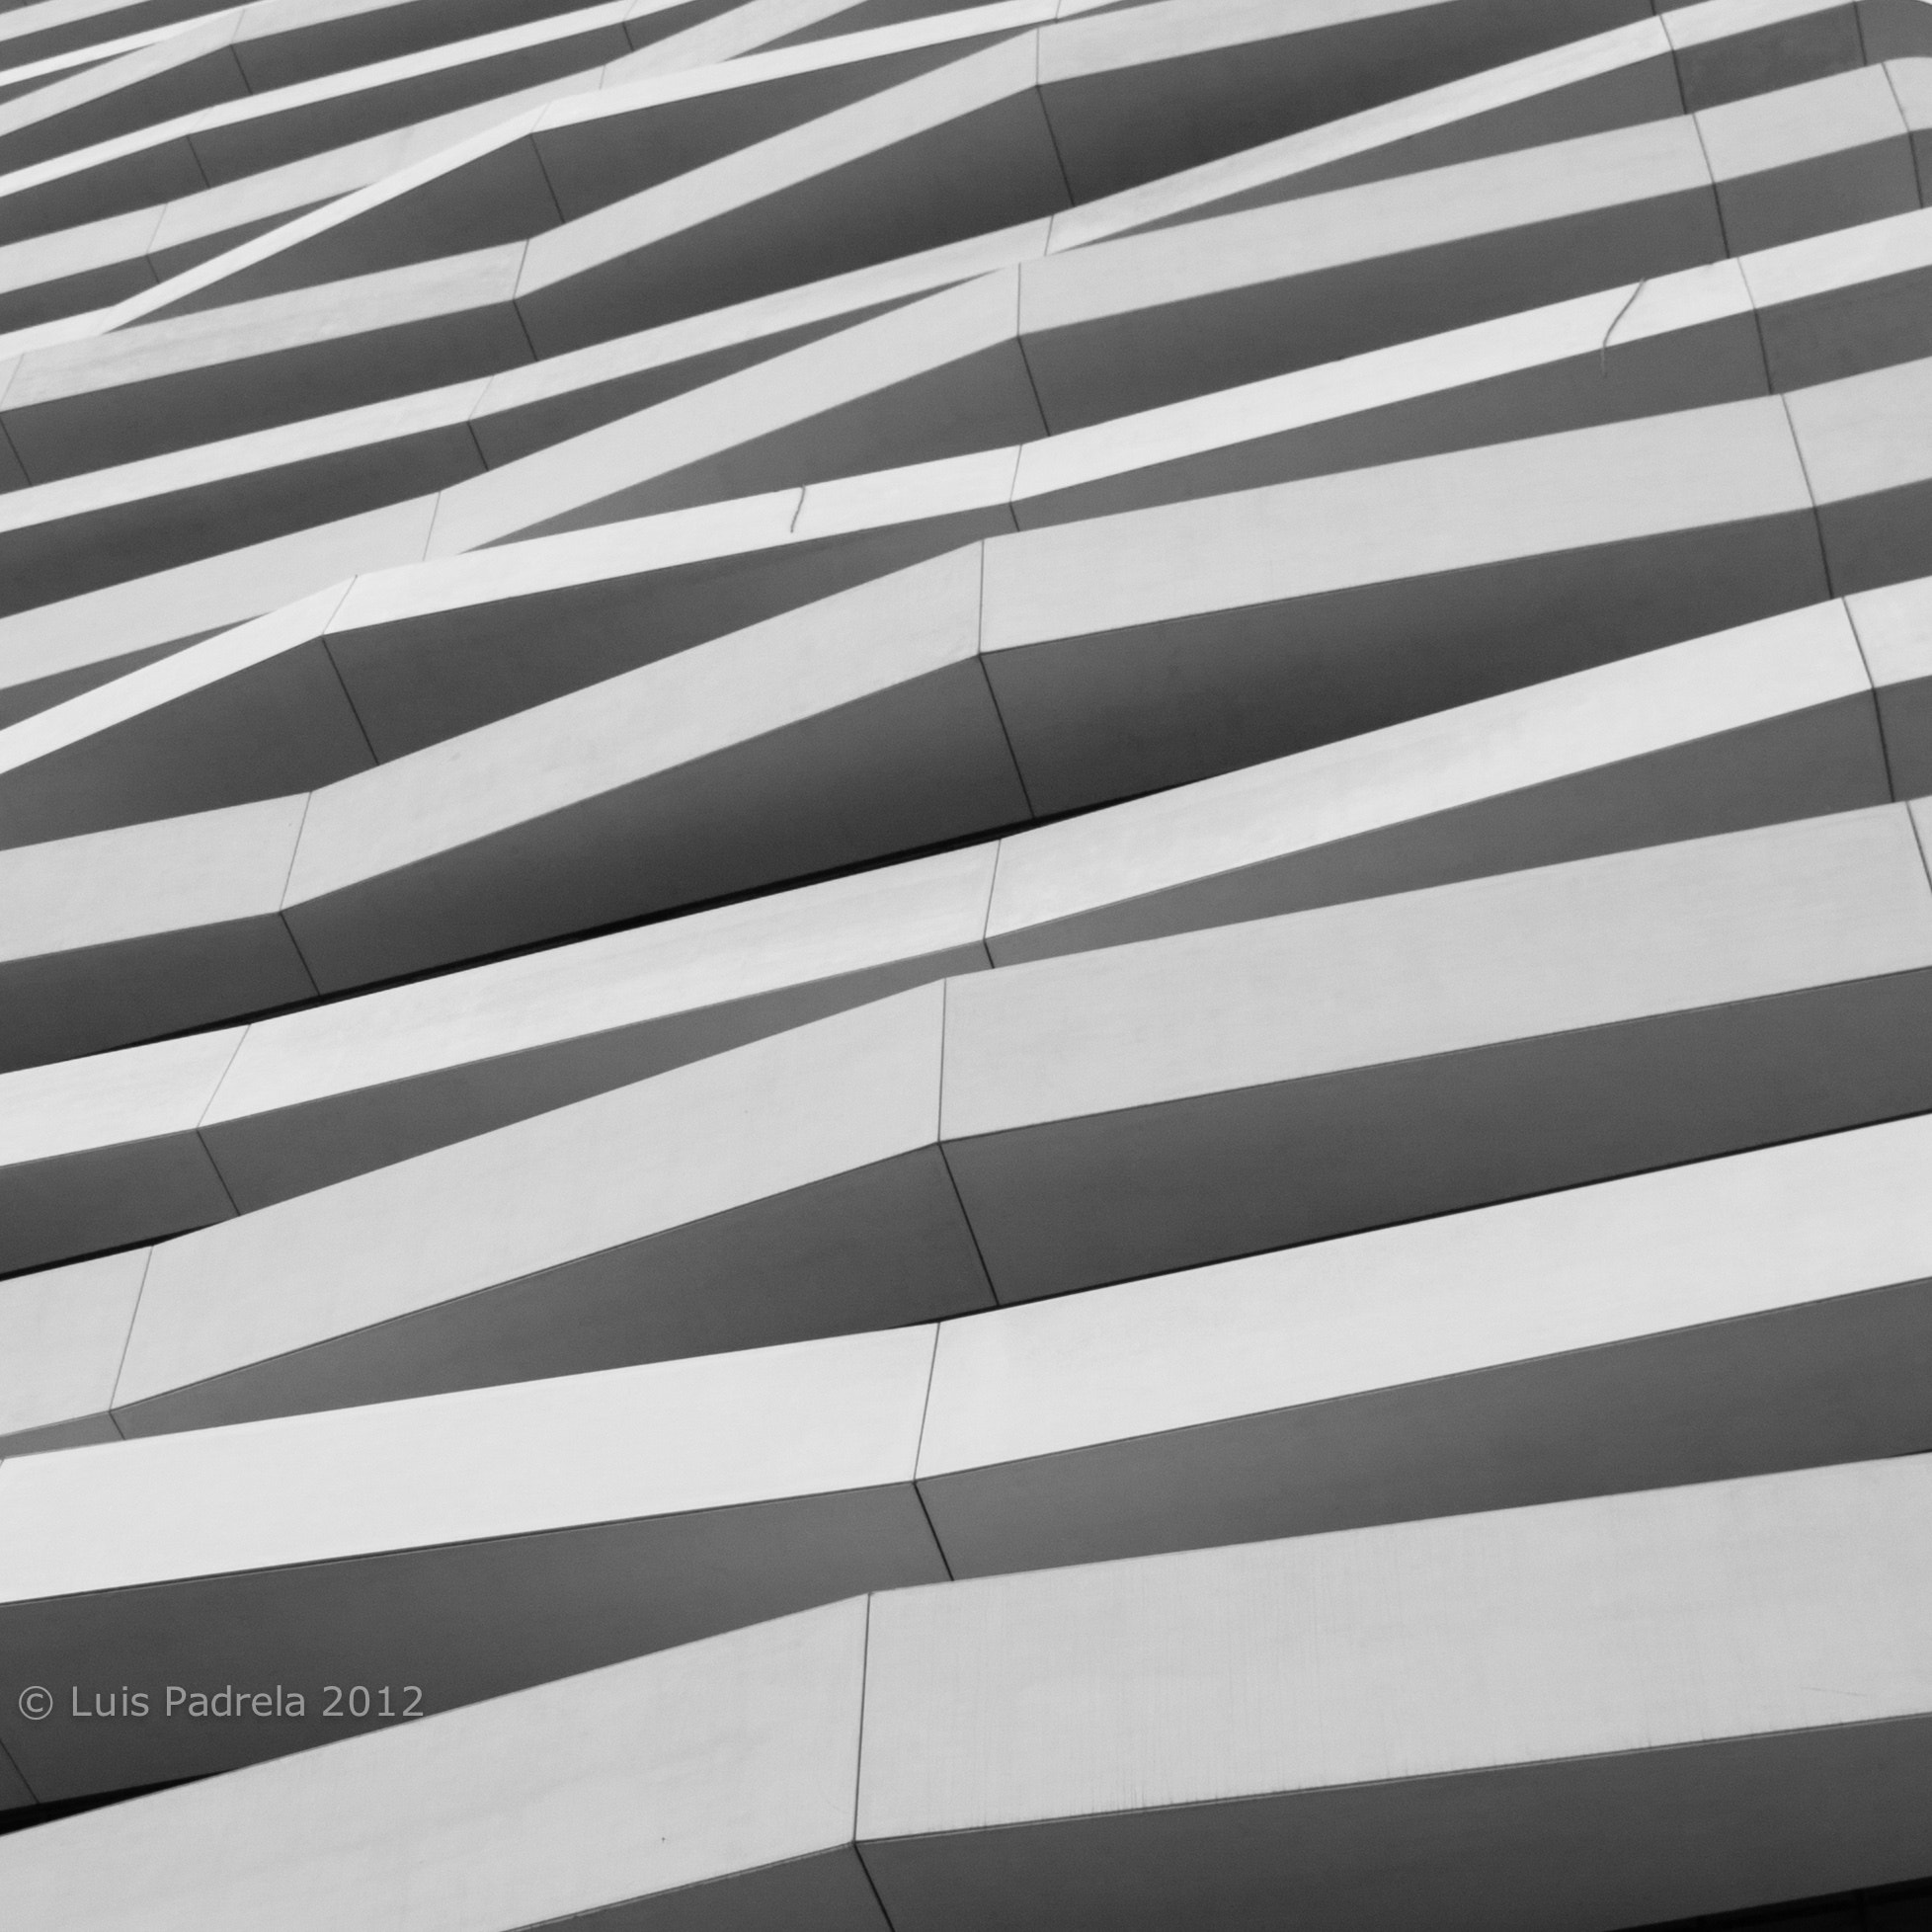 Photograph Concrete waves (minimalistic view) by Luis Padrela on 500px